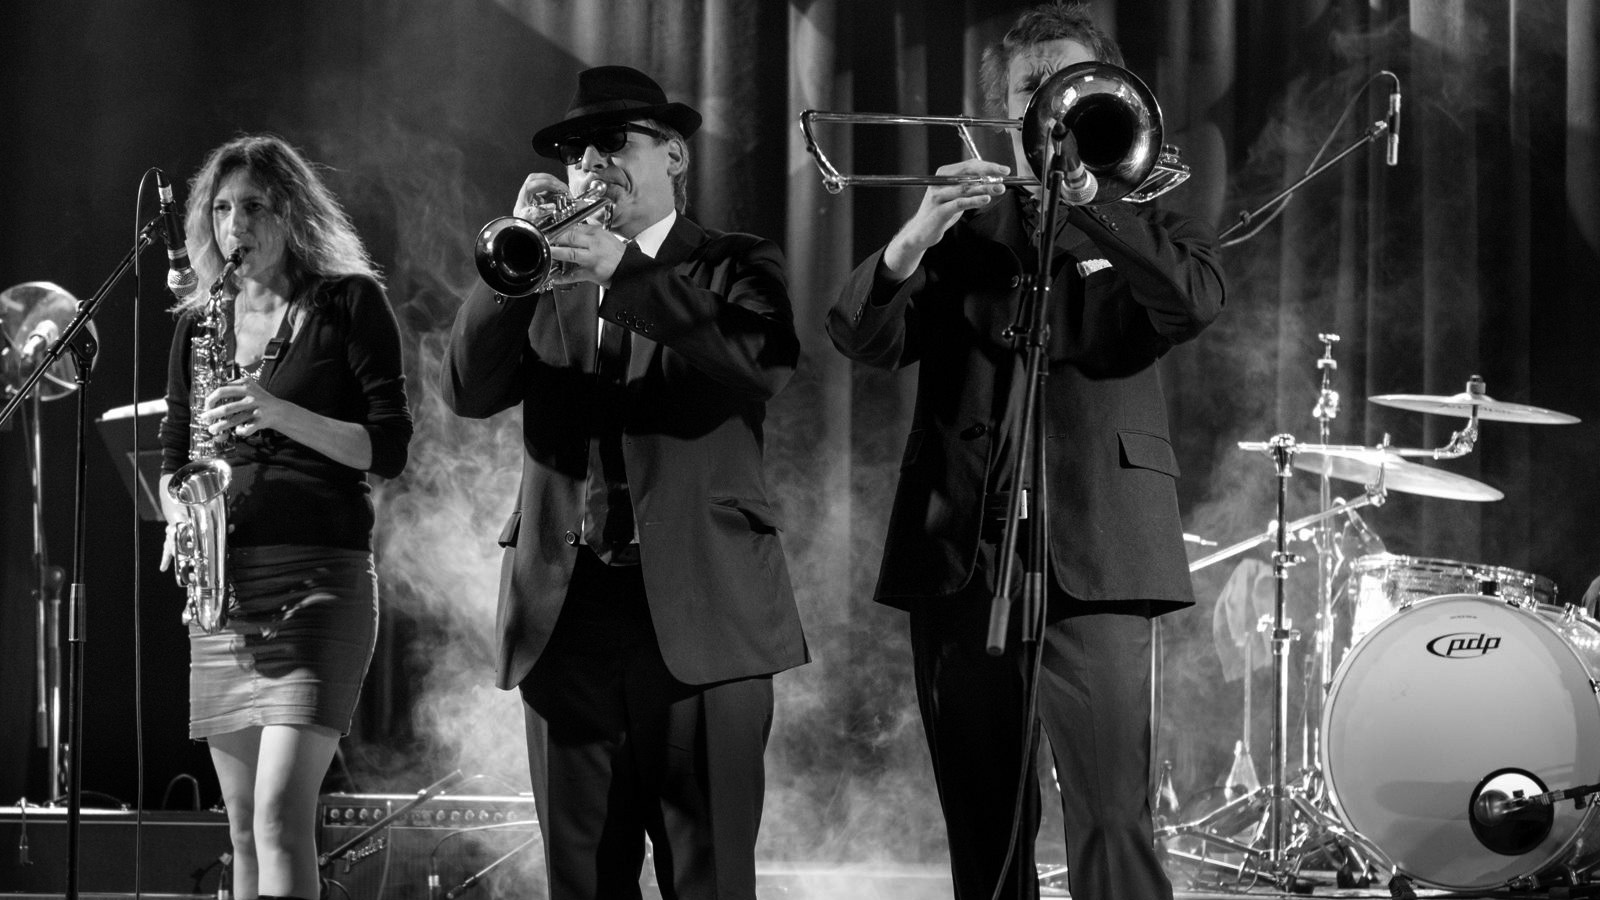 The-Souldiers-with-horn-section-on-stage-at-Tante-Ju-Dresden